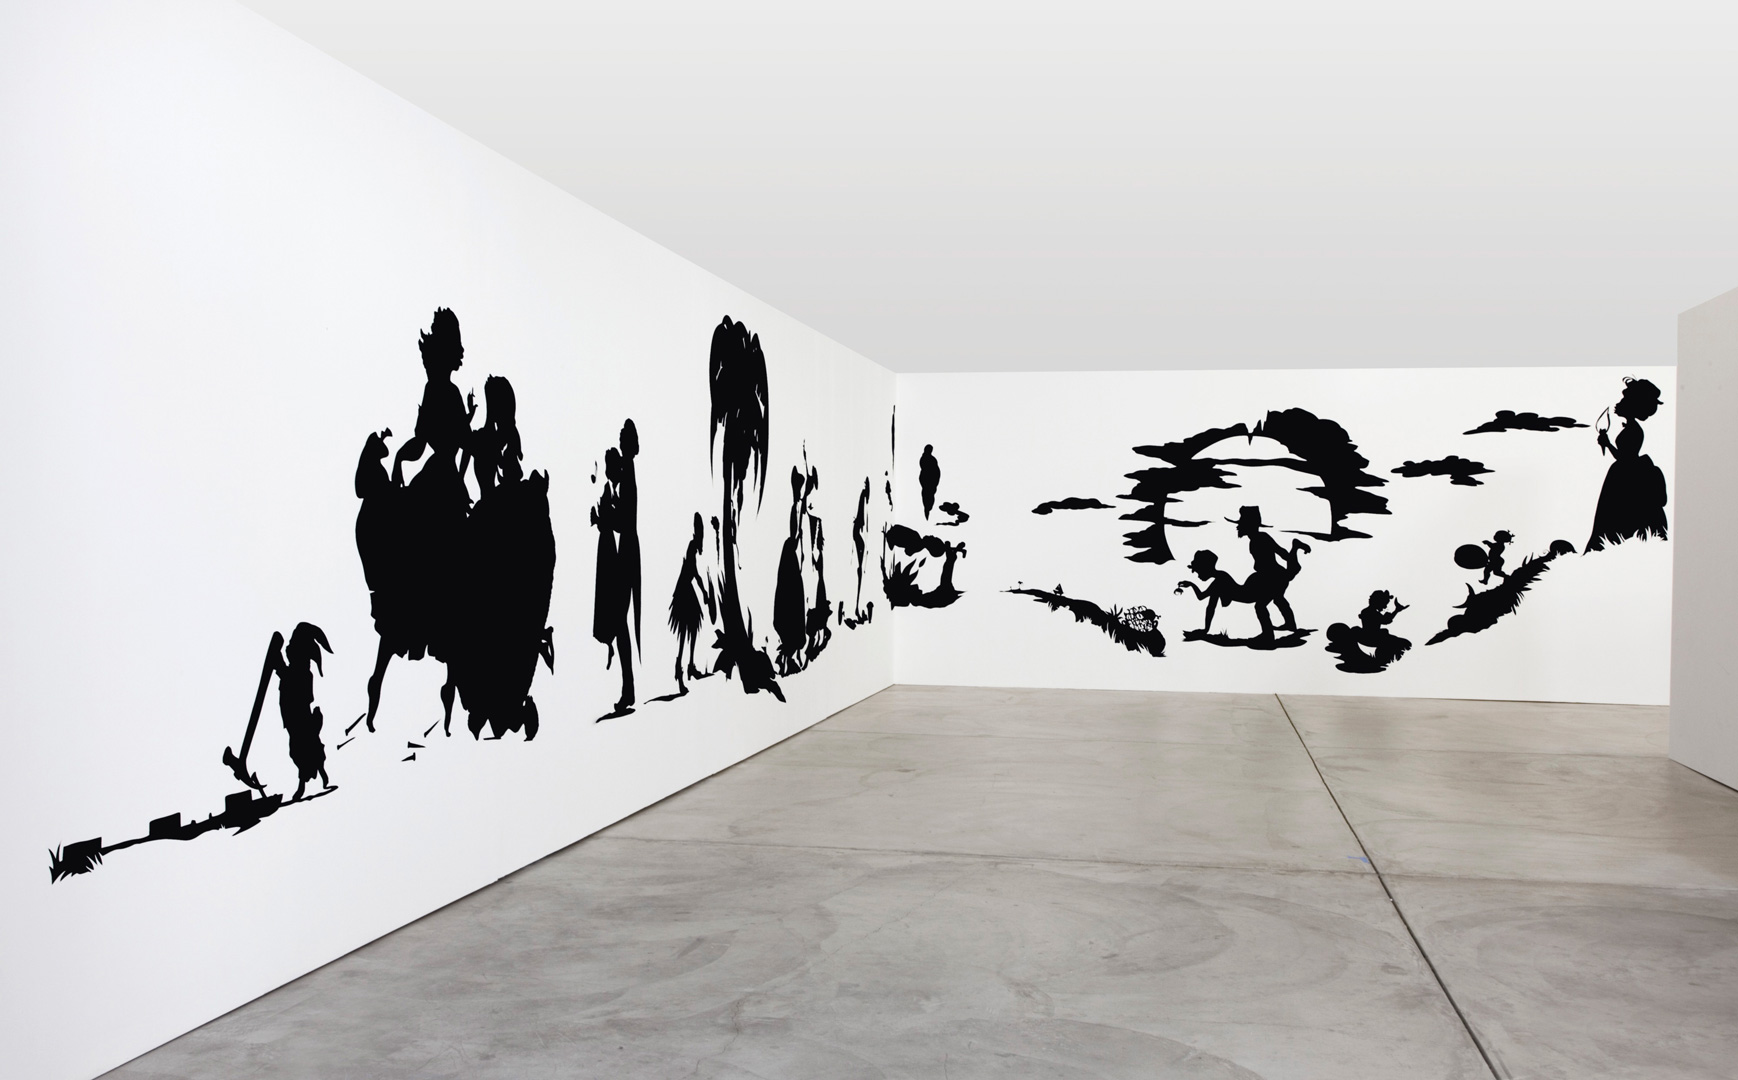 Kara Walker - African't, 1996, cut paper on wall